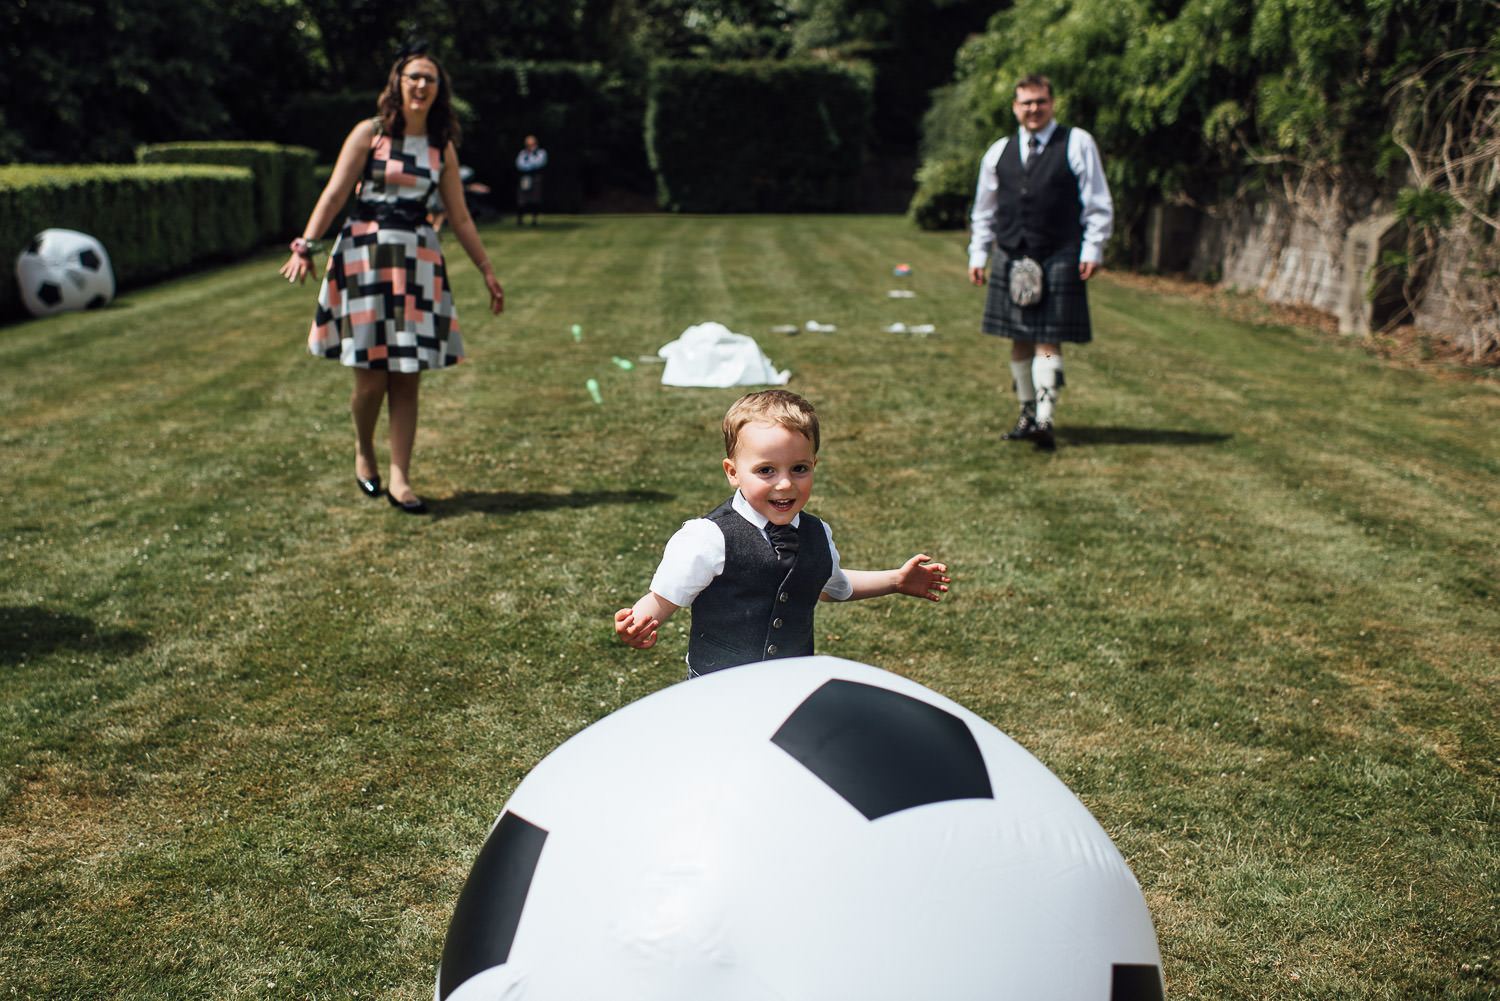 Wedding games in Barley Wood House Bristol Wedding by bristol wedding photographer the shannons photography